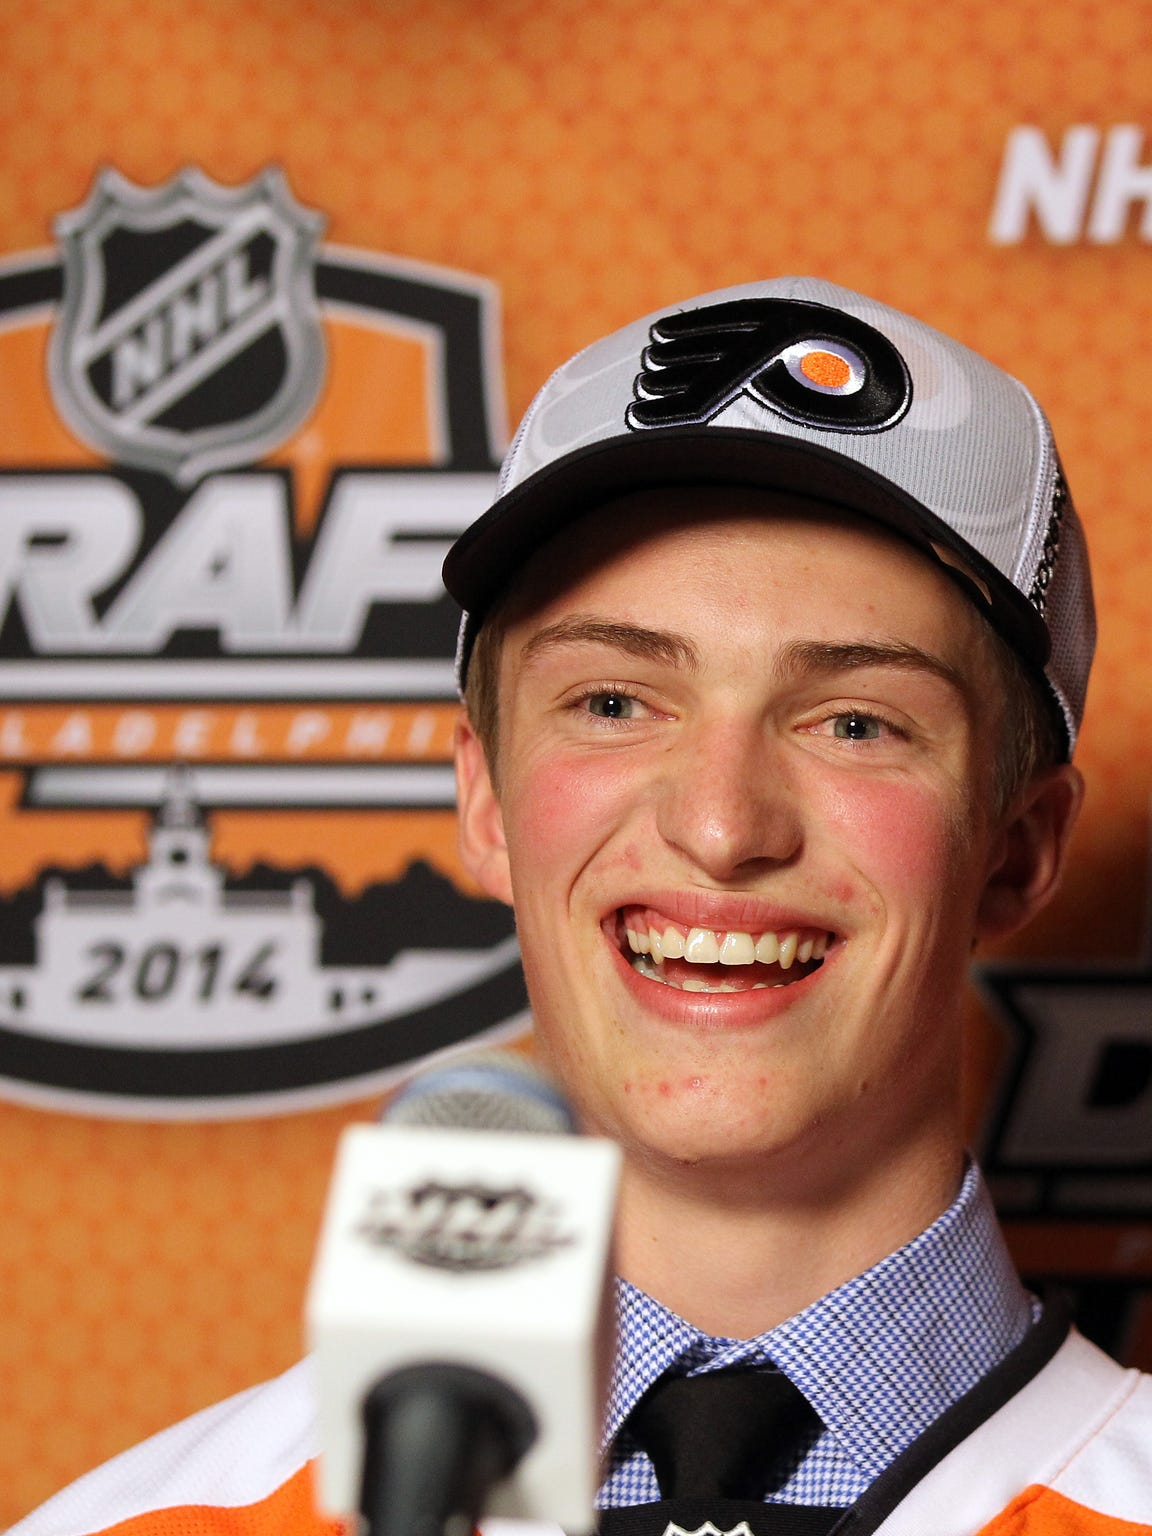 After the Flyers drafted Travis Sanheim in 2014, he